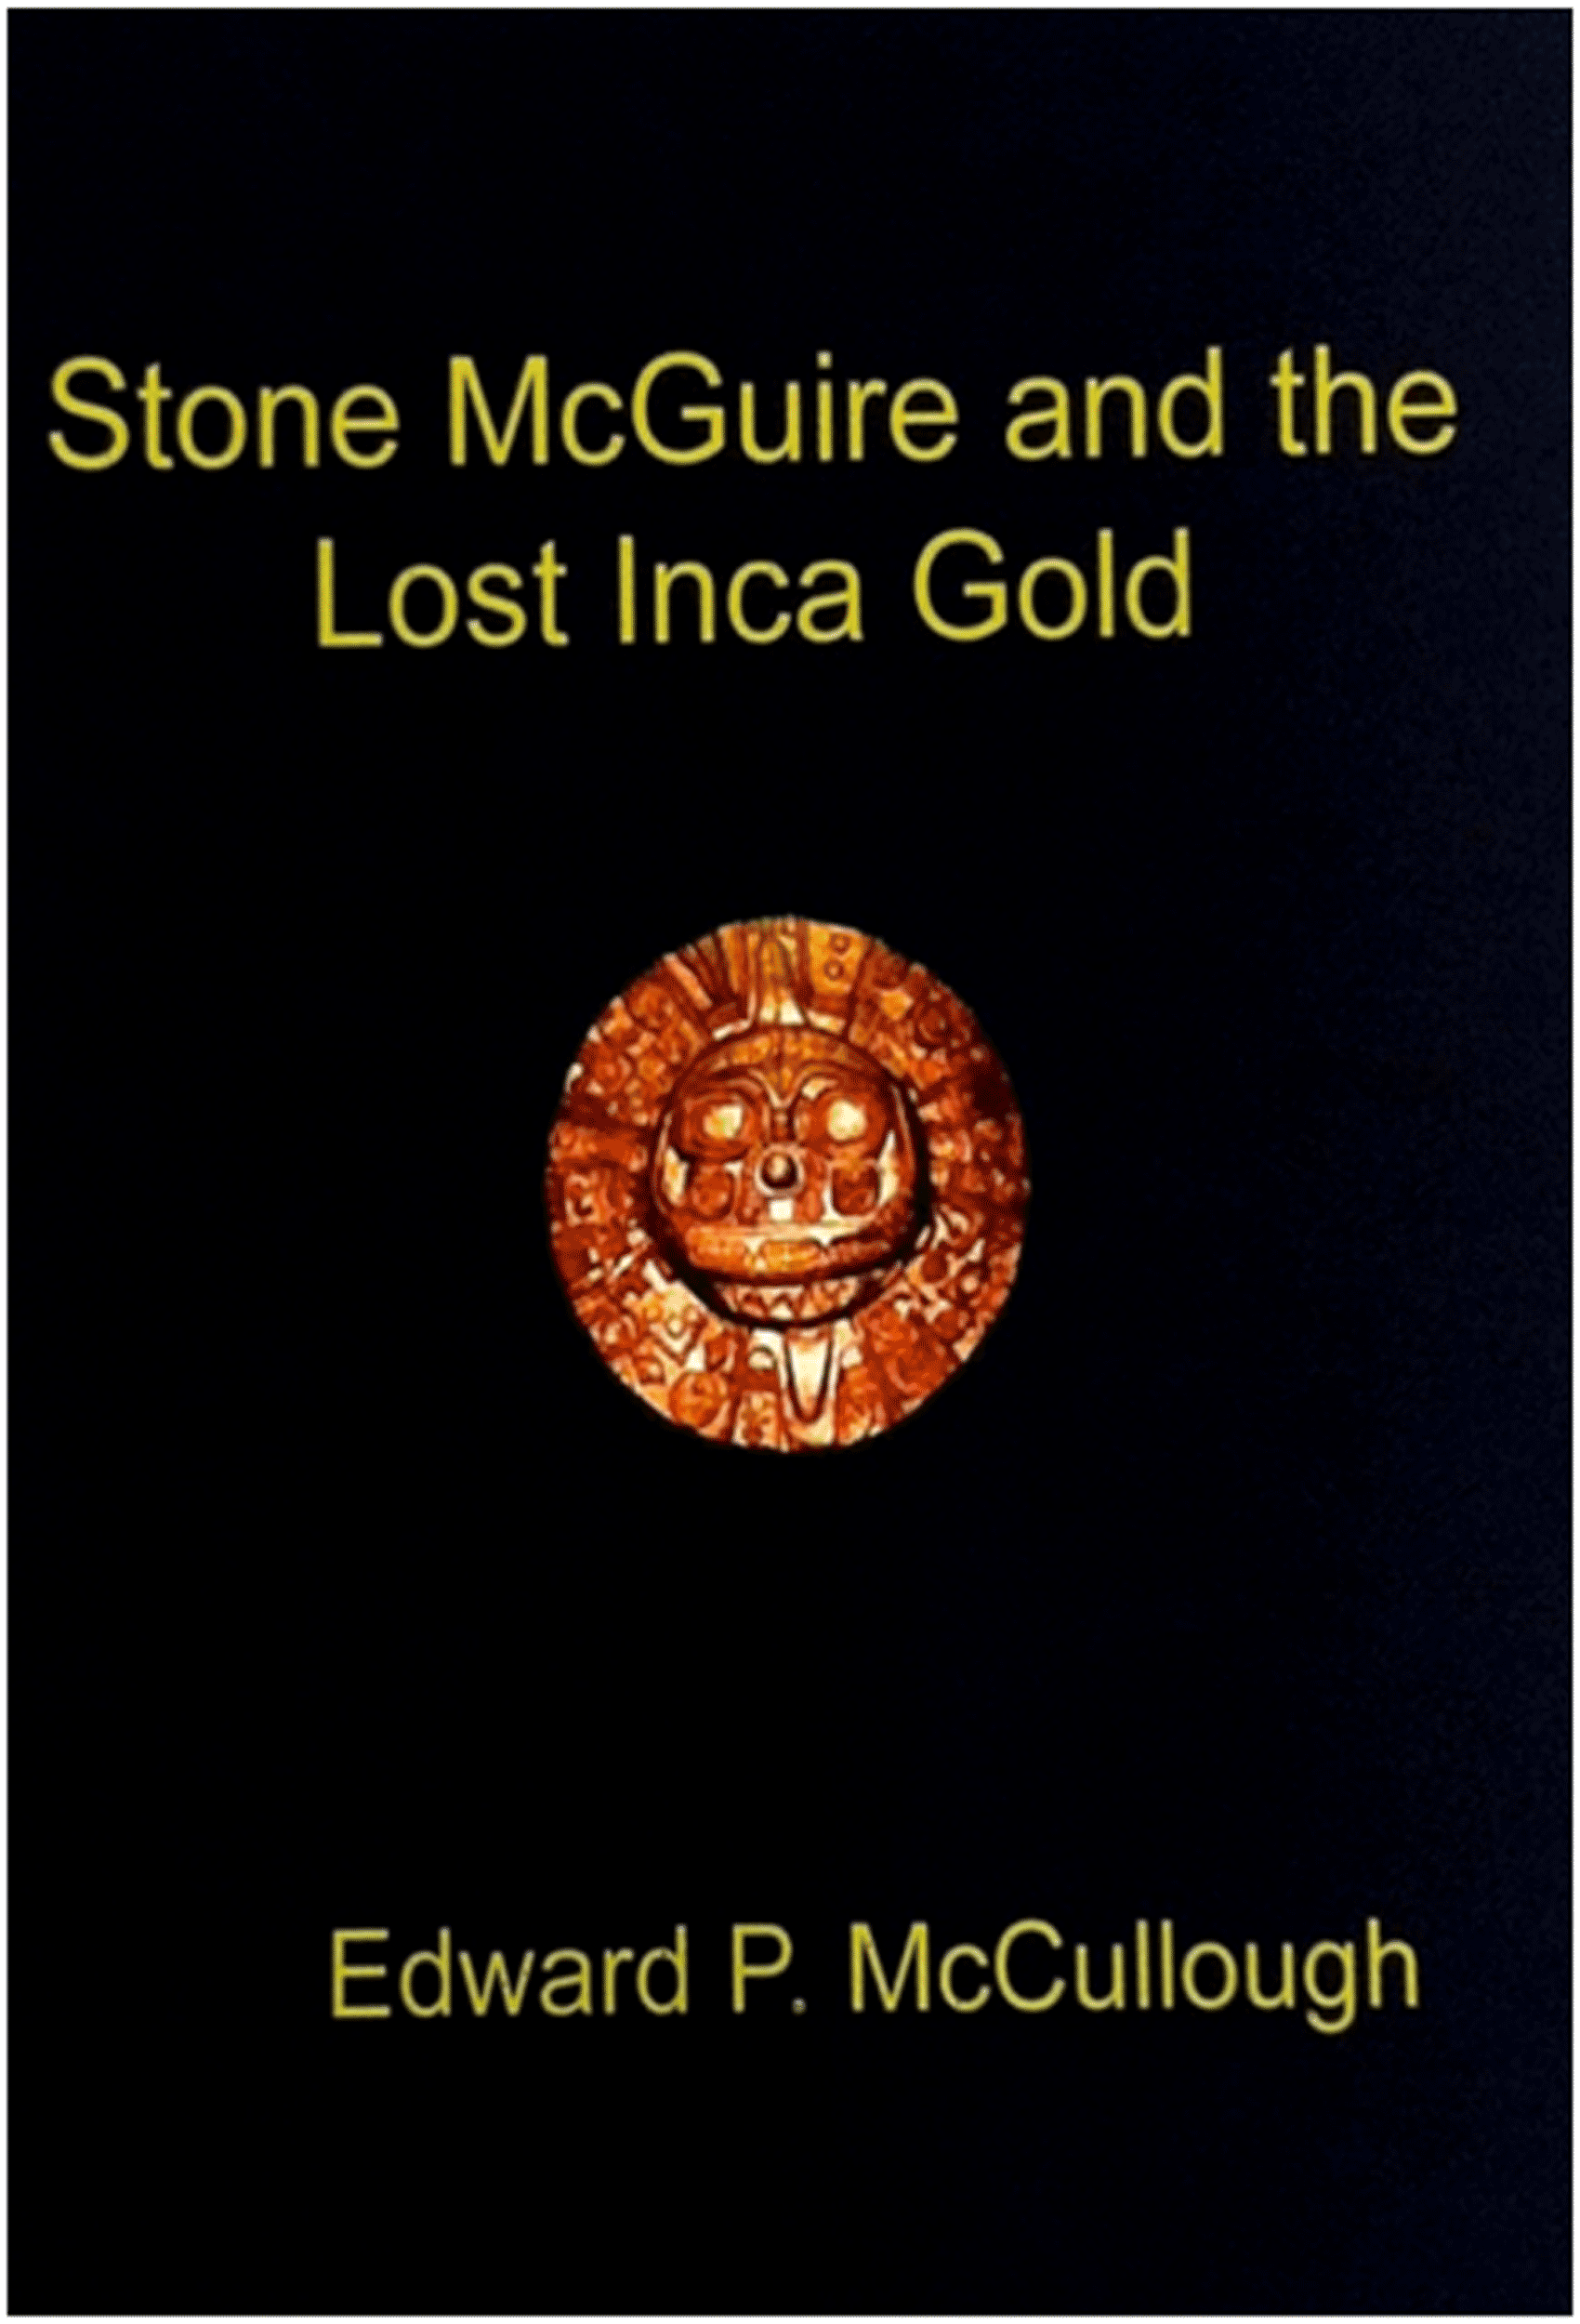 Stone McGuire and the Lost Inca Gold cover